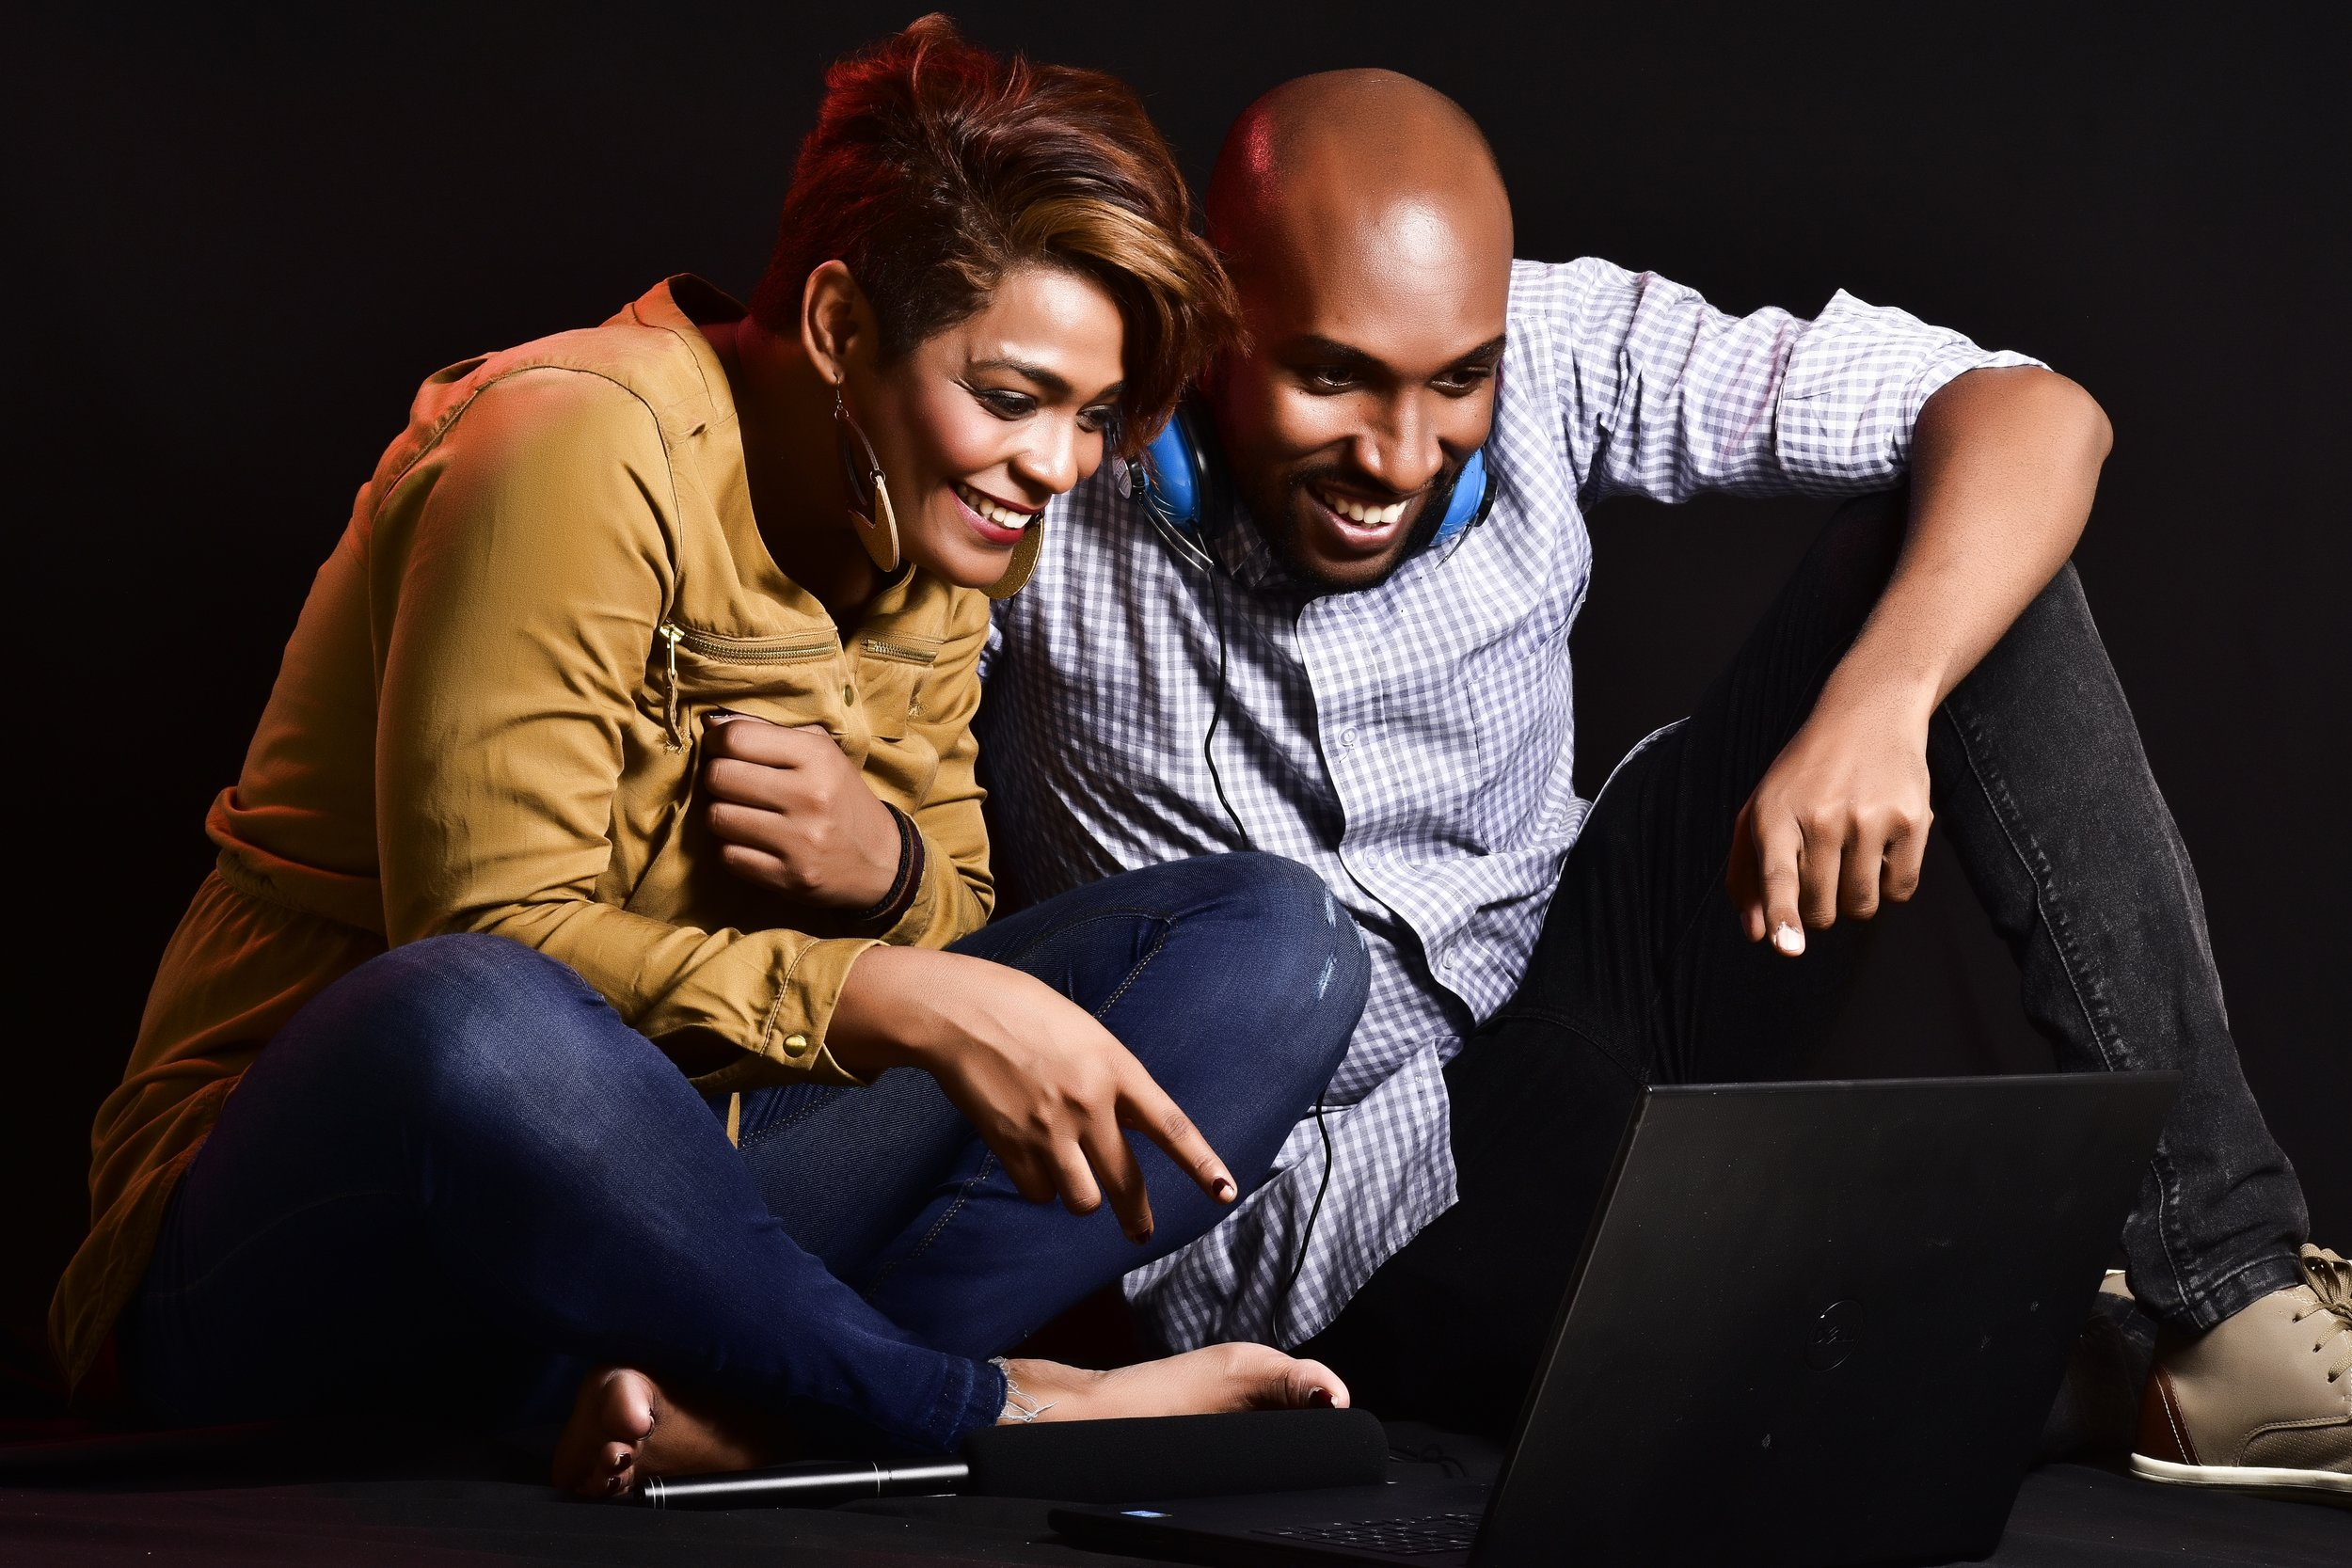 Reimagine your financial life. - Reimagine, recreate and rebuild your financial life and become financially empowered with the BLAK Wealth™digital mobile bank account and financial empowerment platform.Learn More